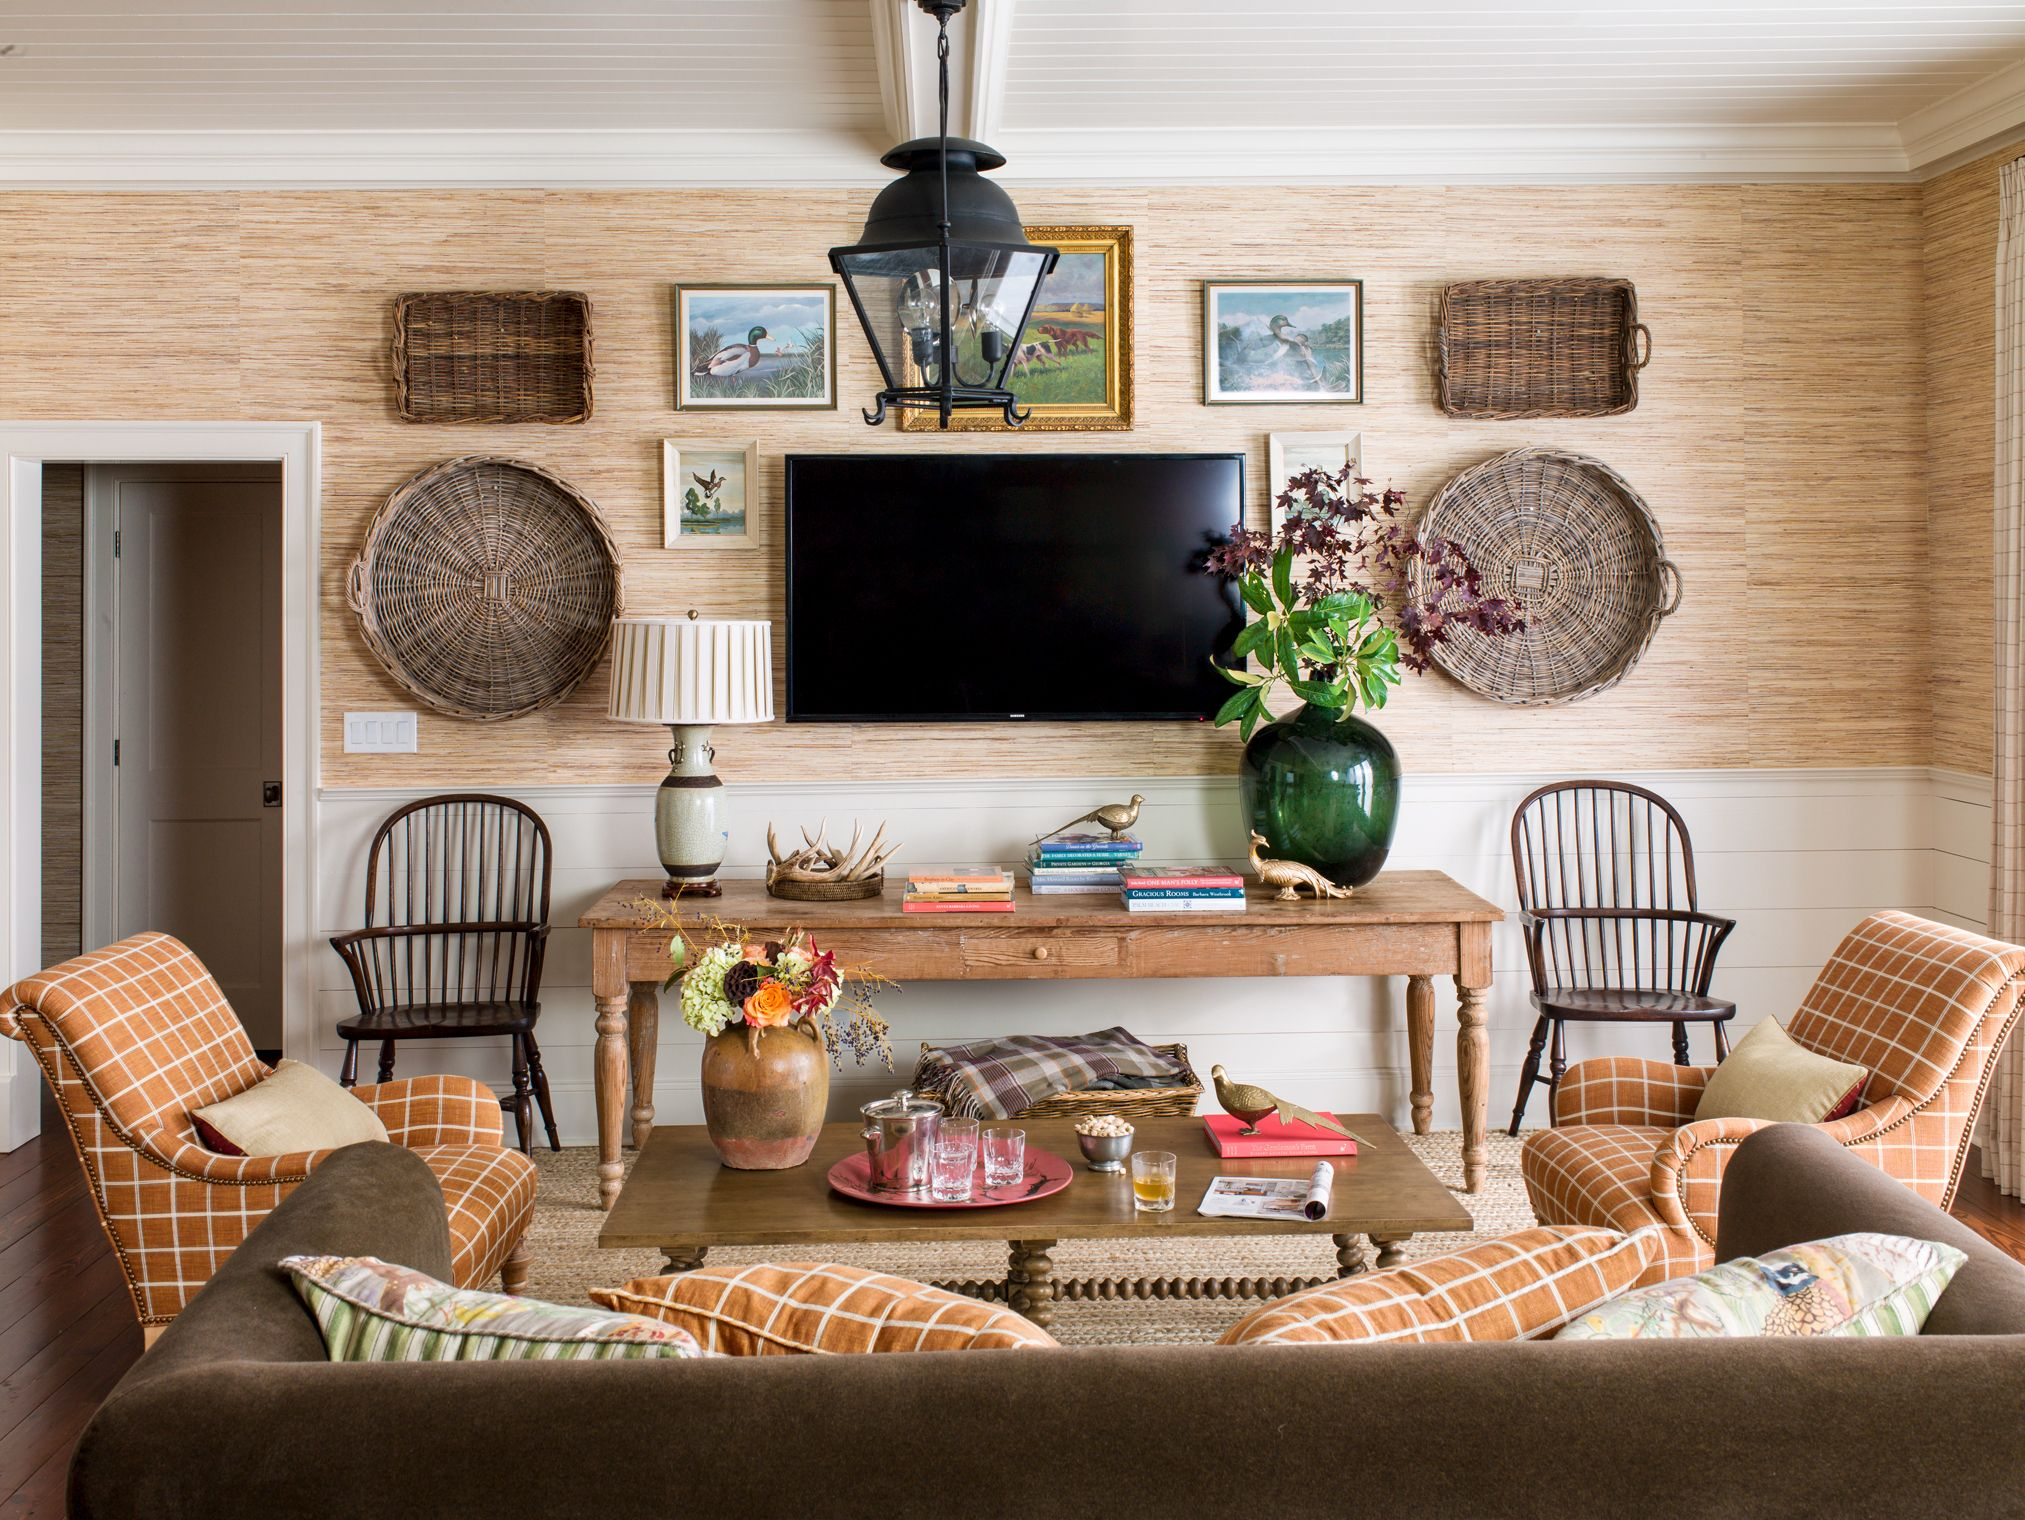 11 Family Room Decorating Ideas - Easy Family Room Design Ideas